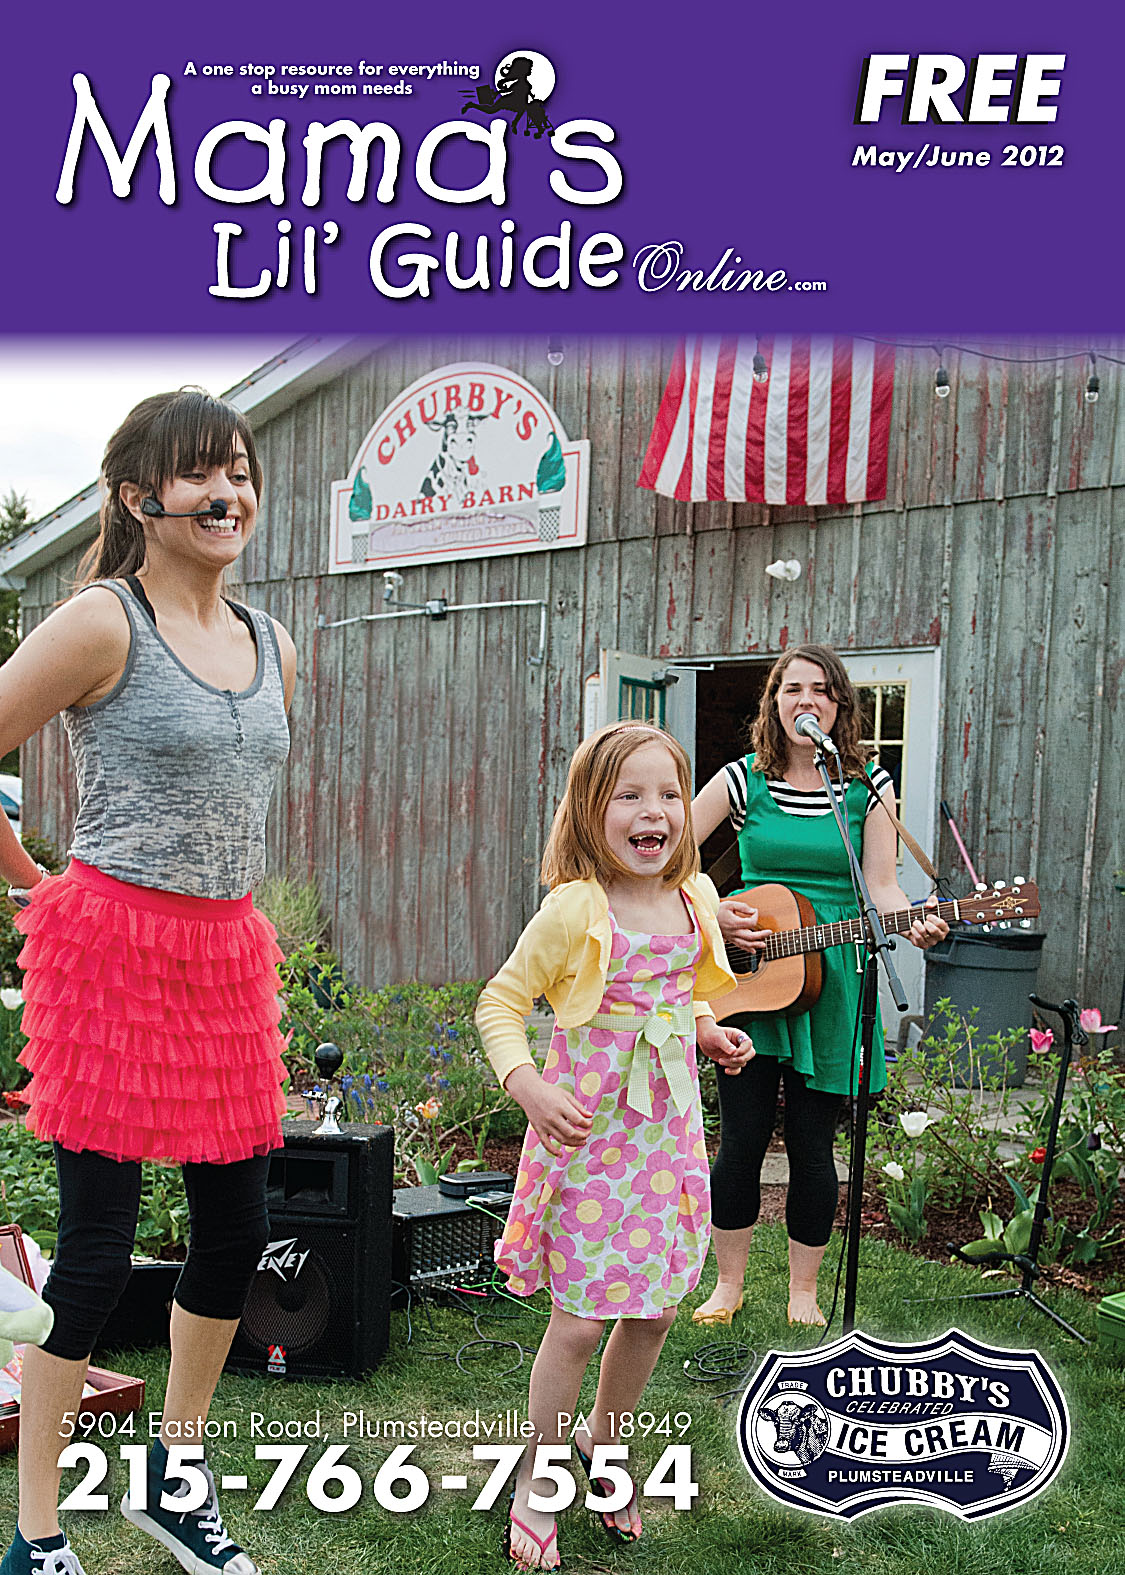 Mama's Lil' Guide May/June 2012 Issue